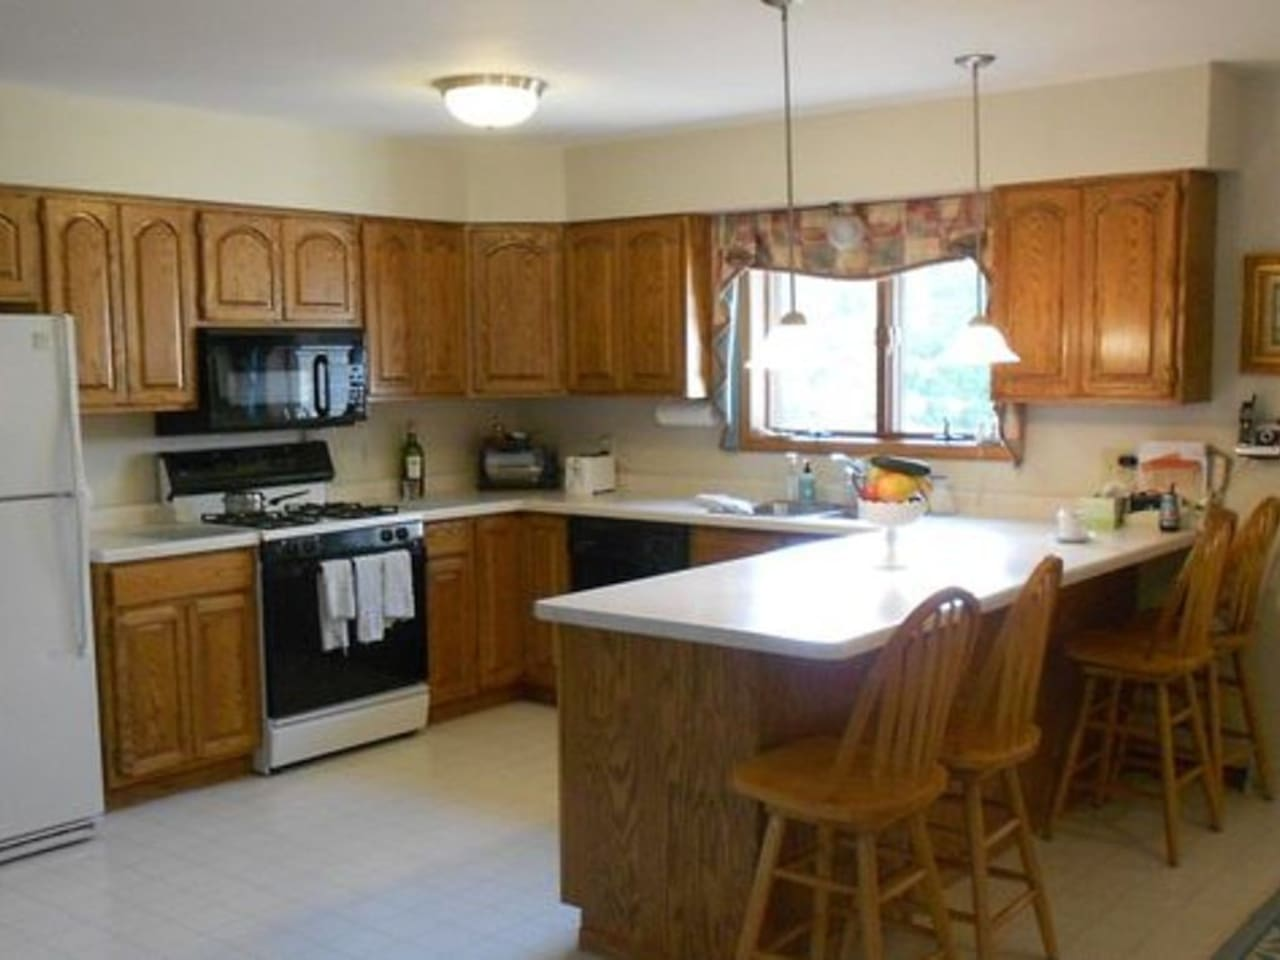 Full Kitchen stocked with all cookware and service for 8+.  Laundry Room is near kitchen with full size washer and dryer.